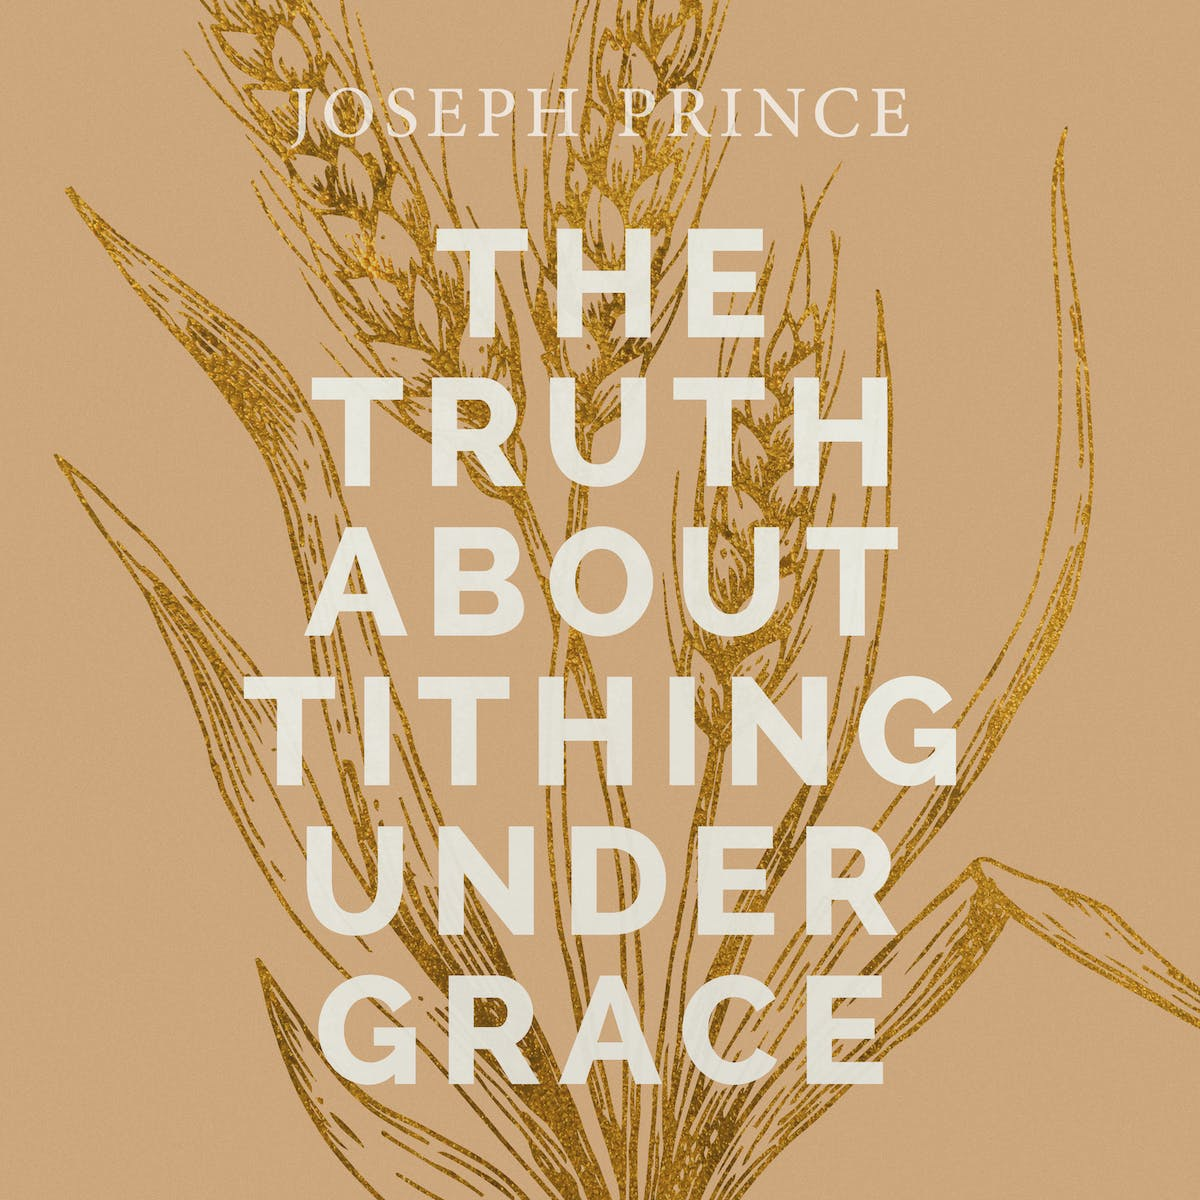 The Truth About Tithing Under Grace | Official Joseph Prince Sermon